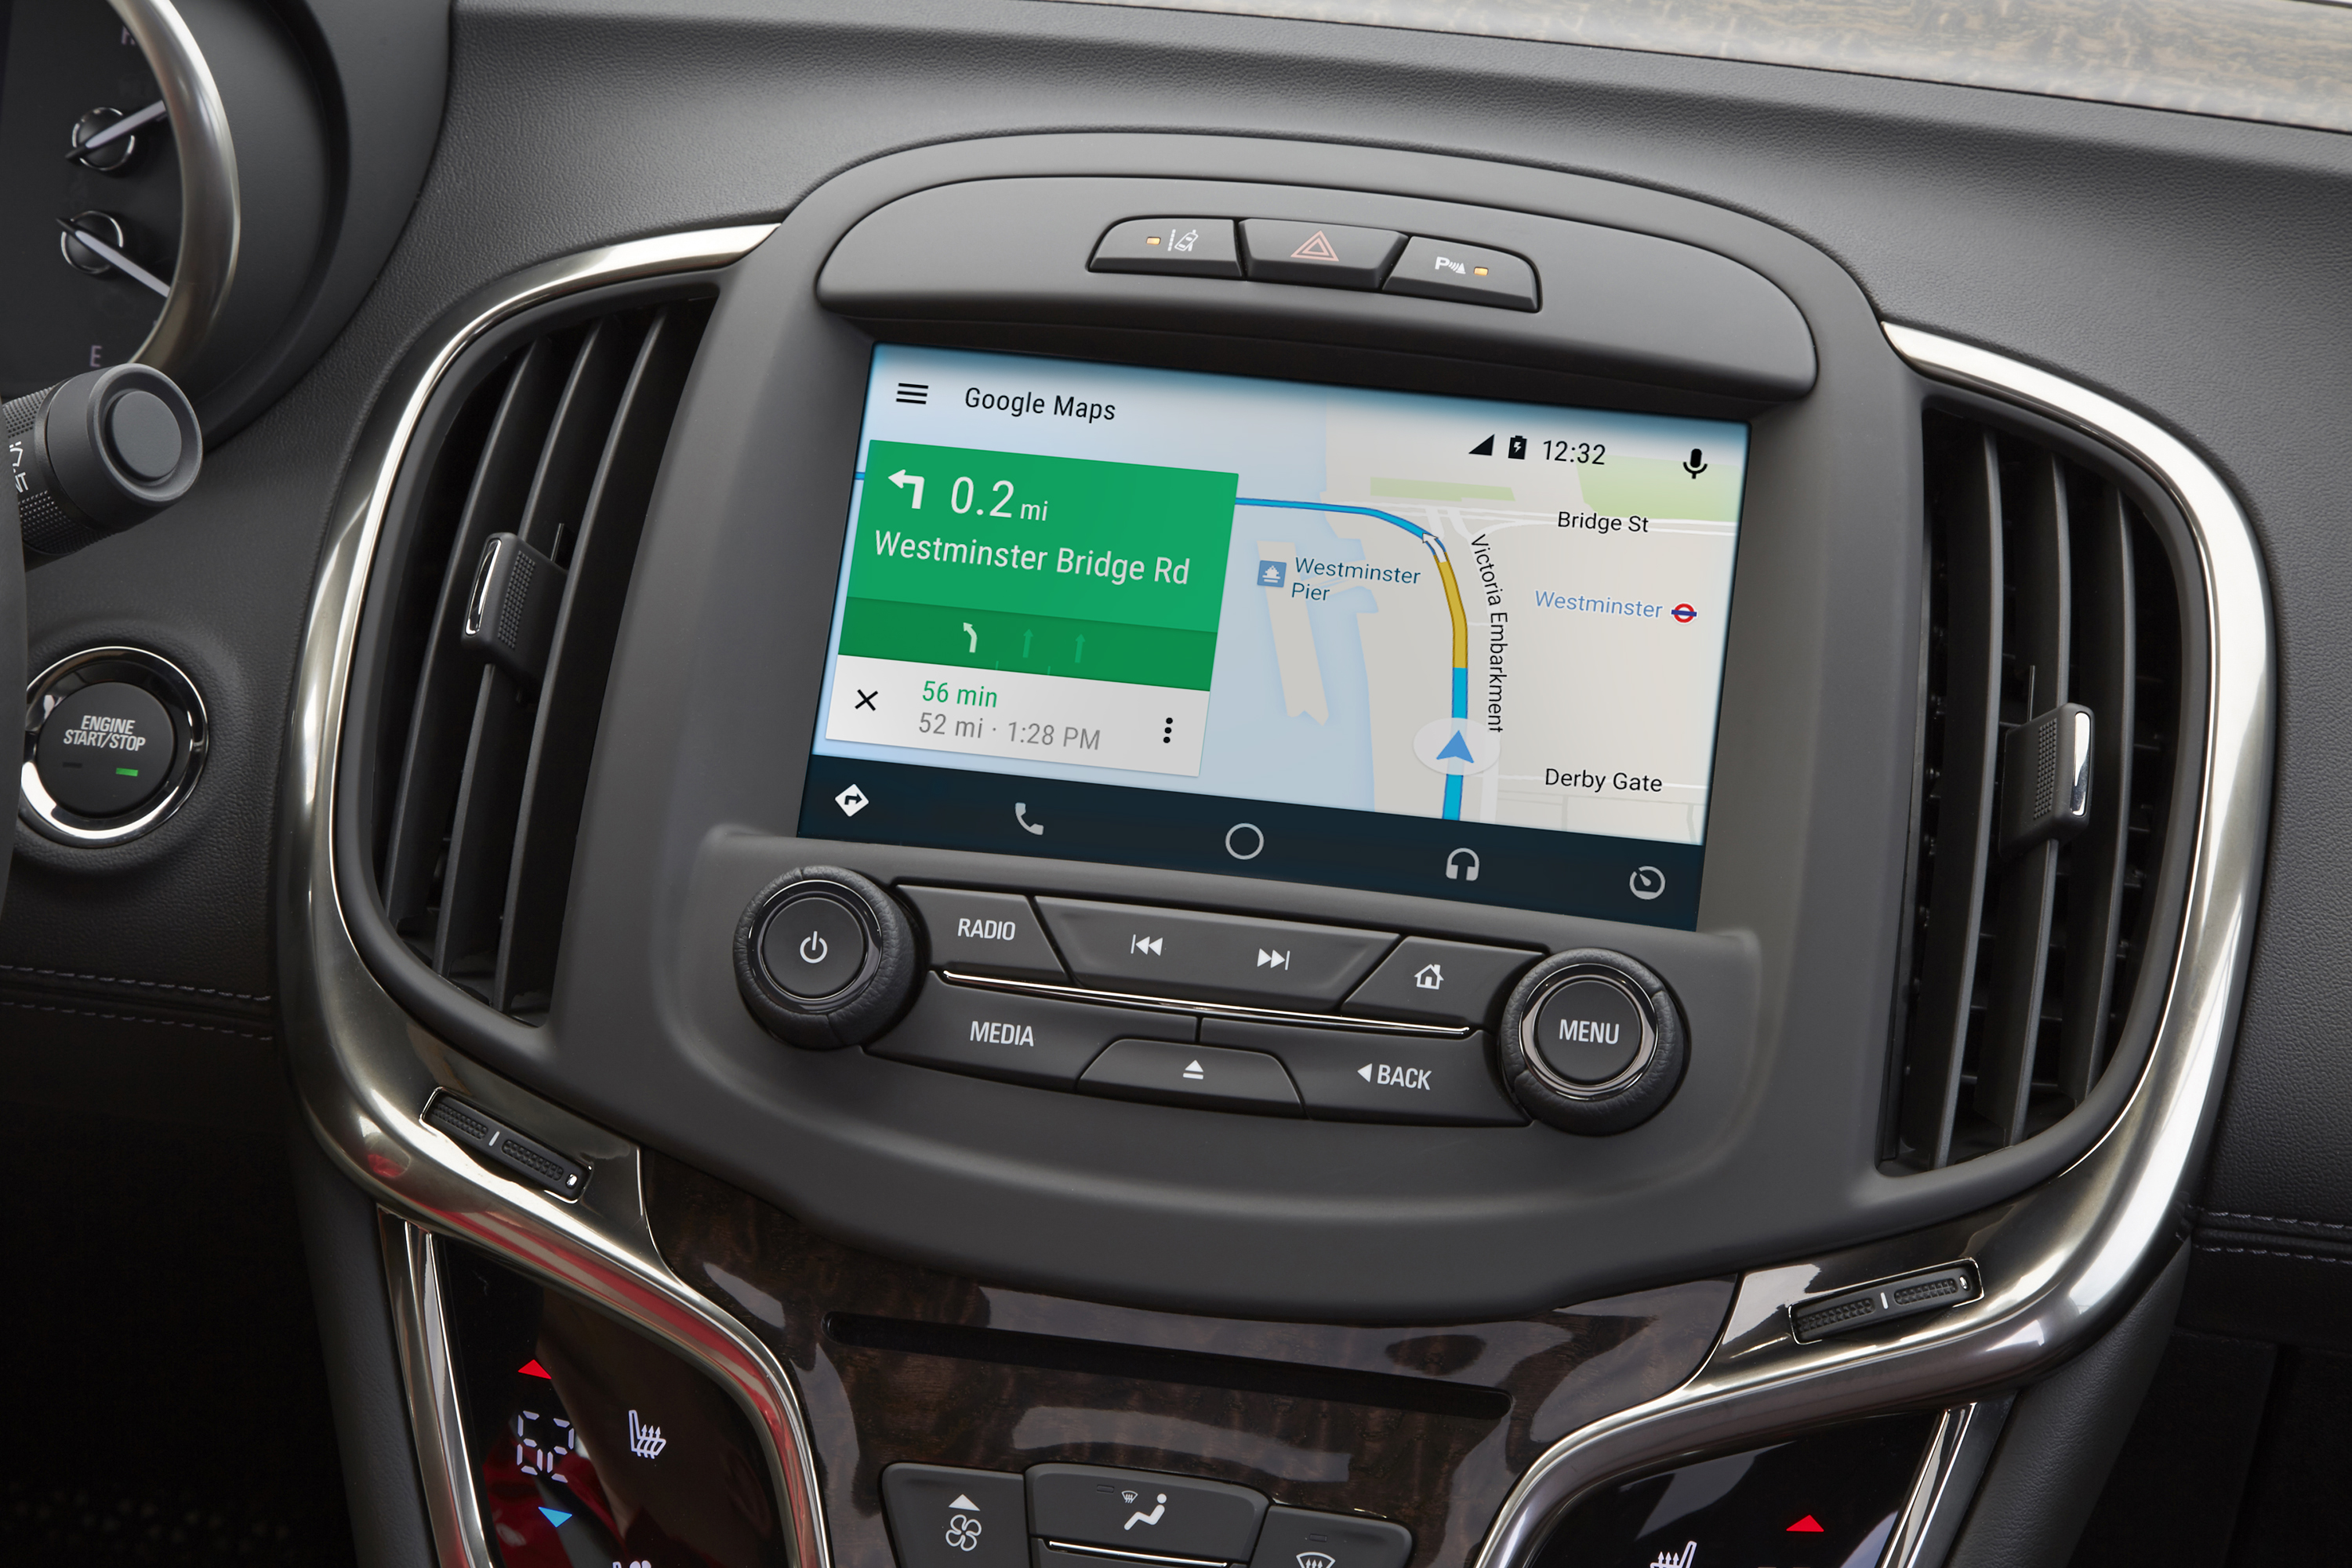 Buick Regal: Listing All Paired and Connected Phones